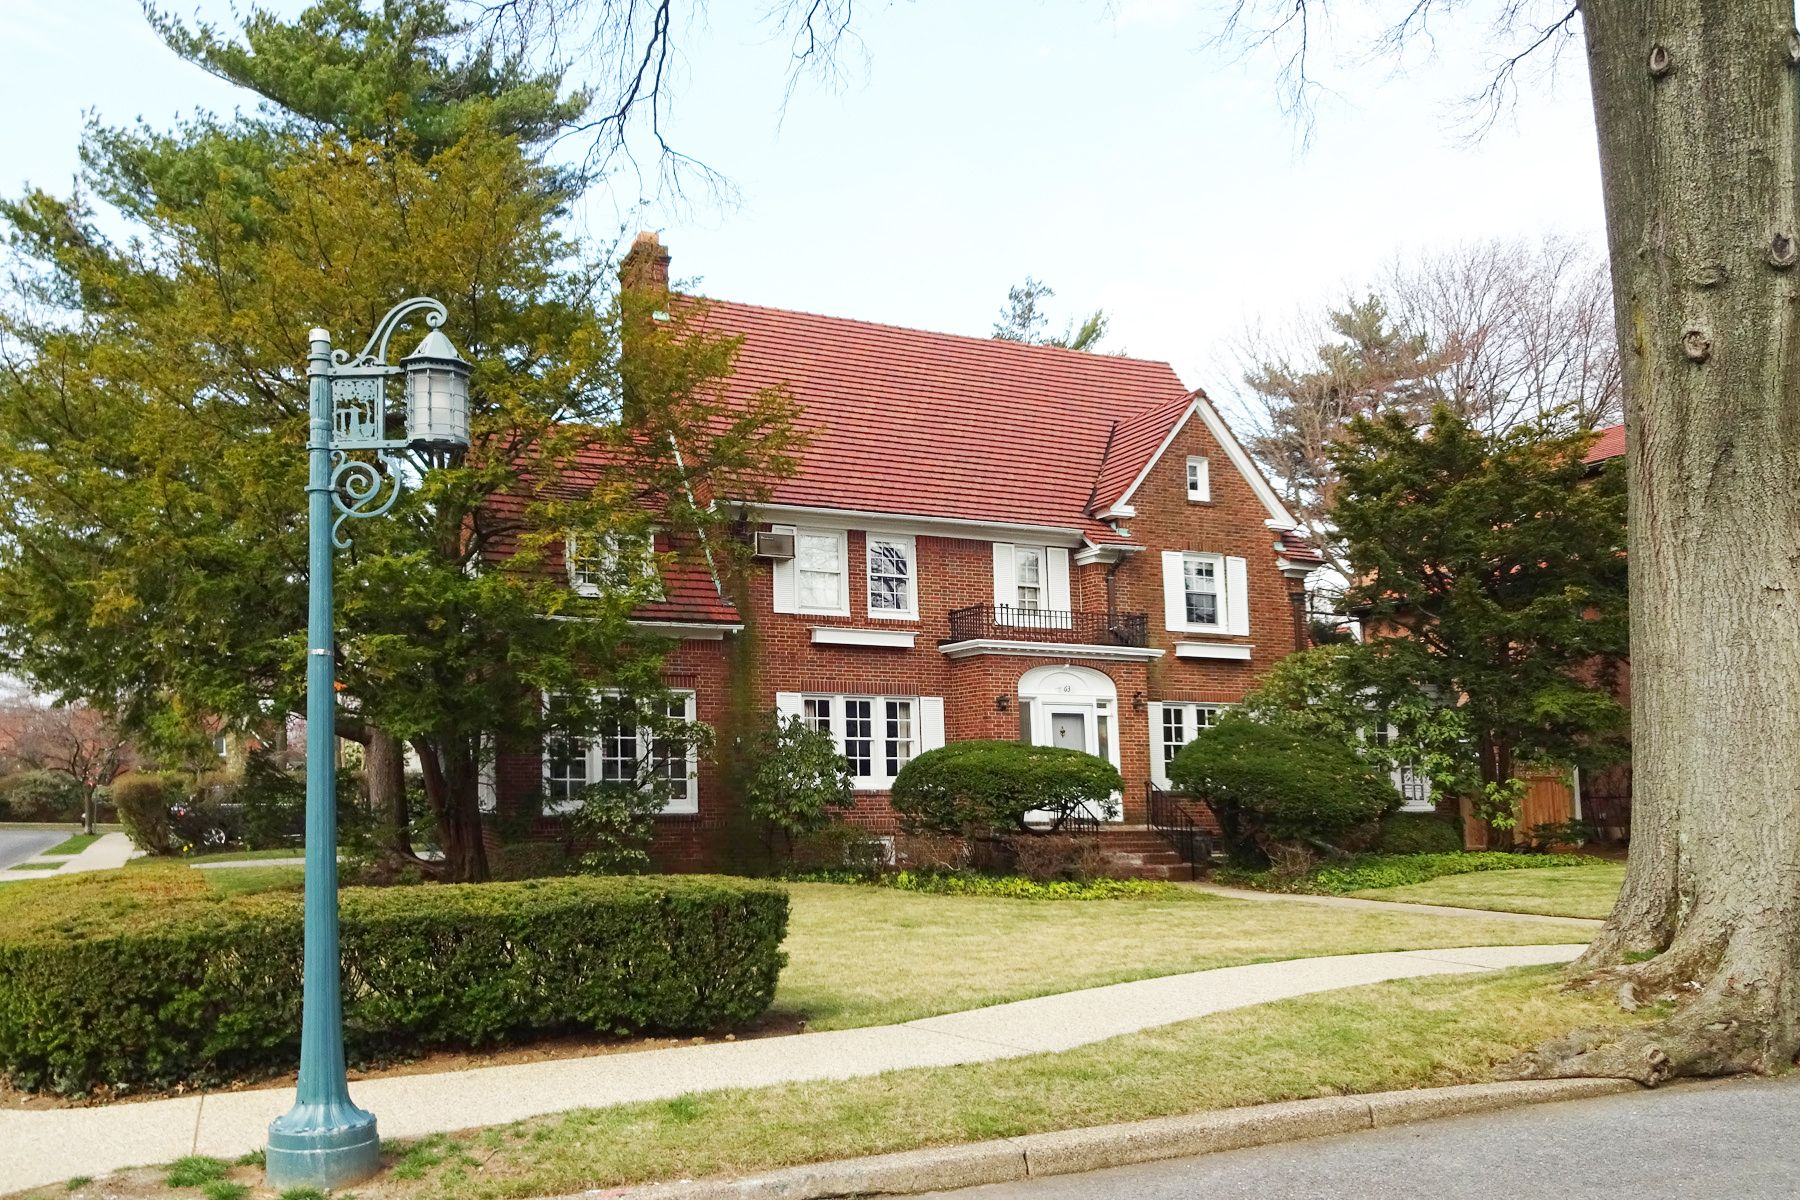 54be907a7a3feac613aebfc80634ad75 - Forest Hills Gardens Real Estate Sotheby's